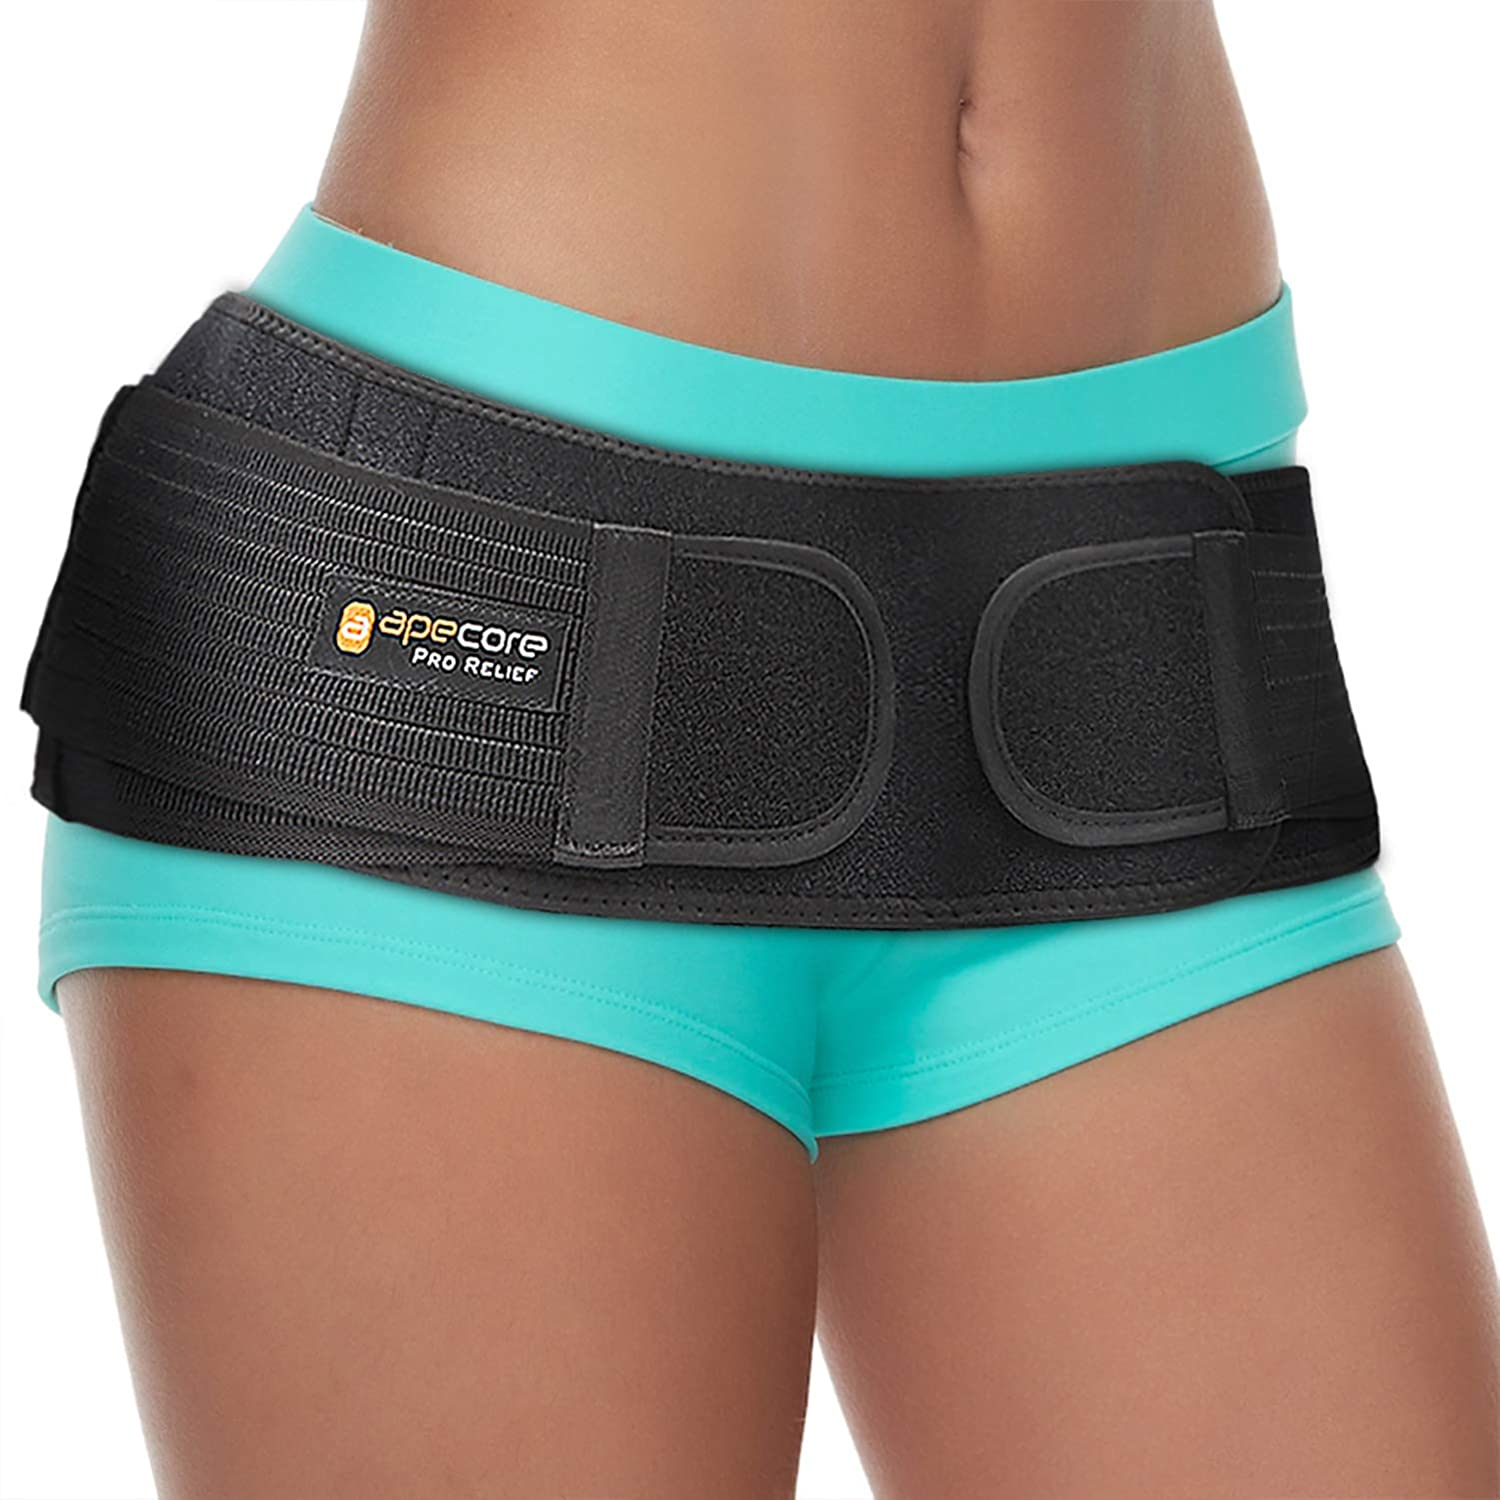 Sacroiliac Si Hip Belt by Apecore – PRO Relief for Sciatica, Pelvic, Lower Back, Lumbar and Leg Pain. Si Joint Support for Women and Men. Anti-Slip Sciatic Nerve Brace: Health & Personal Care